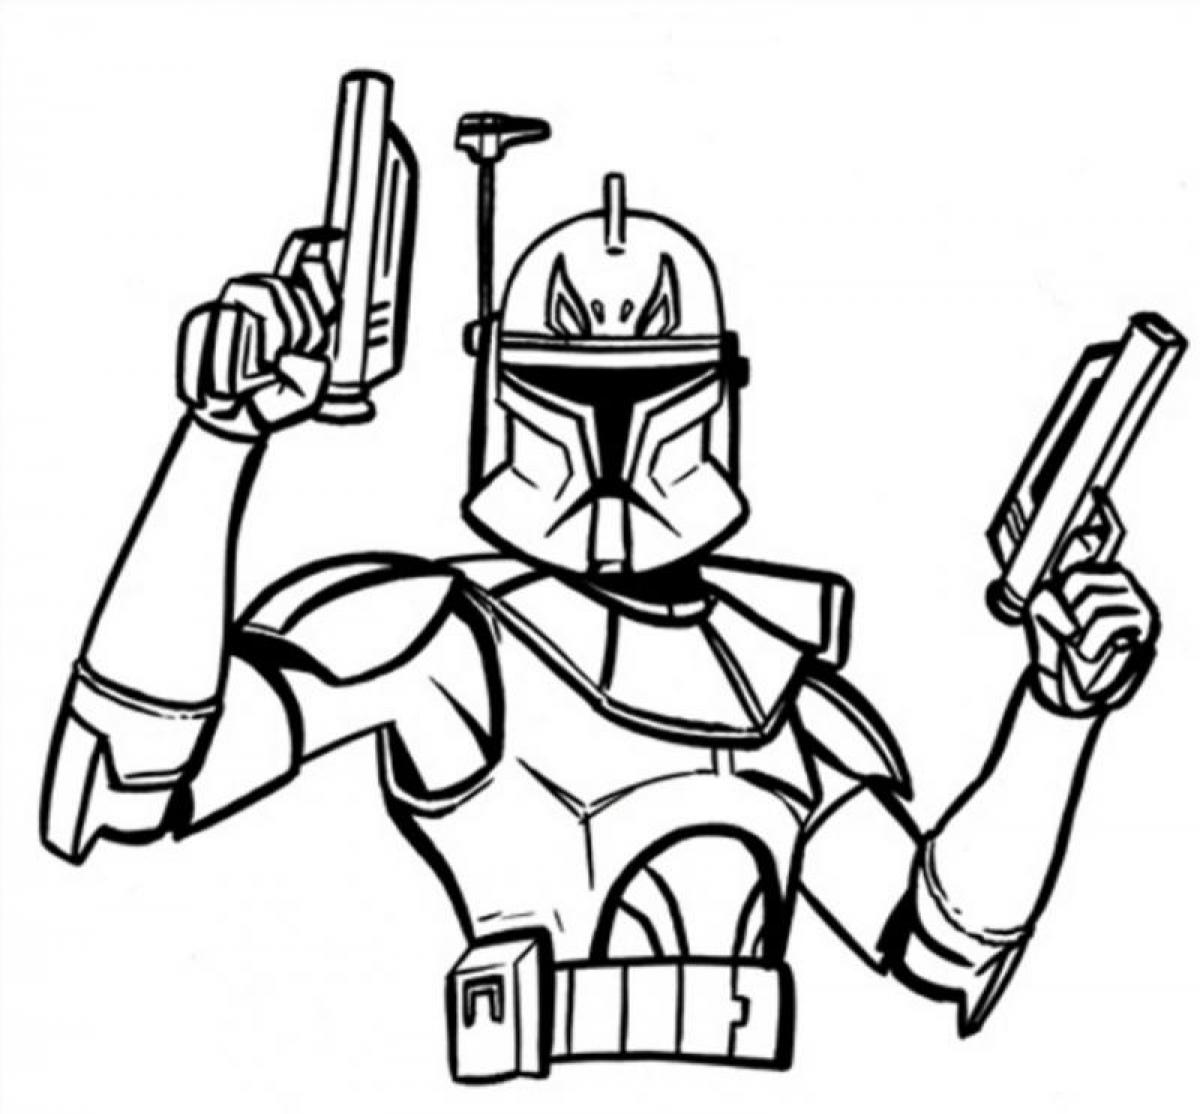 Star Wars Drawing Ideas at GetDrawings.com | Free for personal use ...